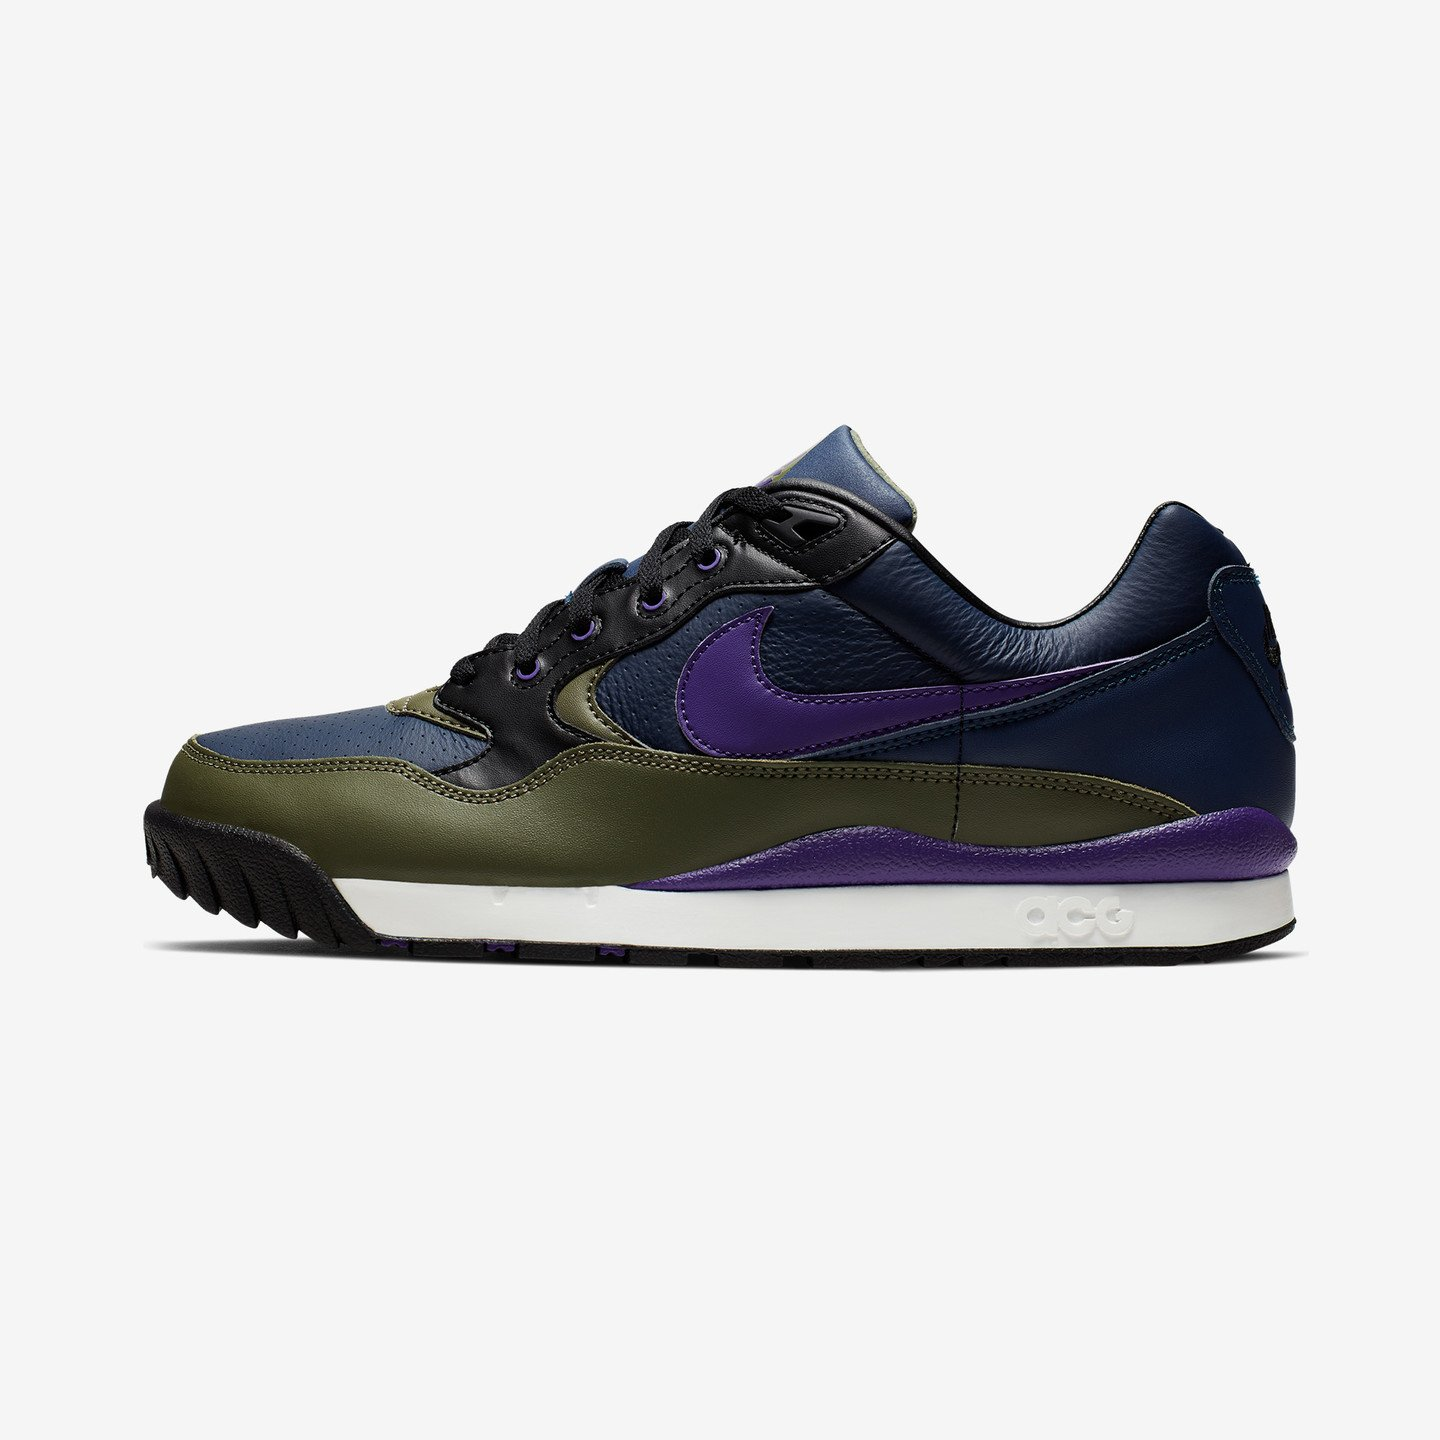 Nike ACG Air Wildwood Midnight Navy / Court Purple / Medium Olive AO3116-400